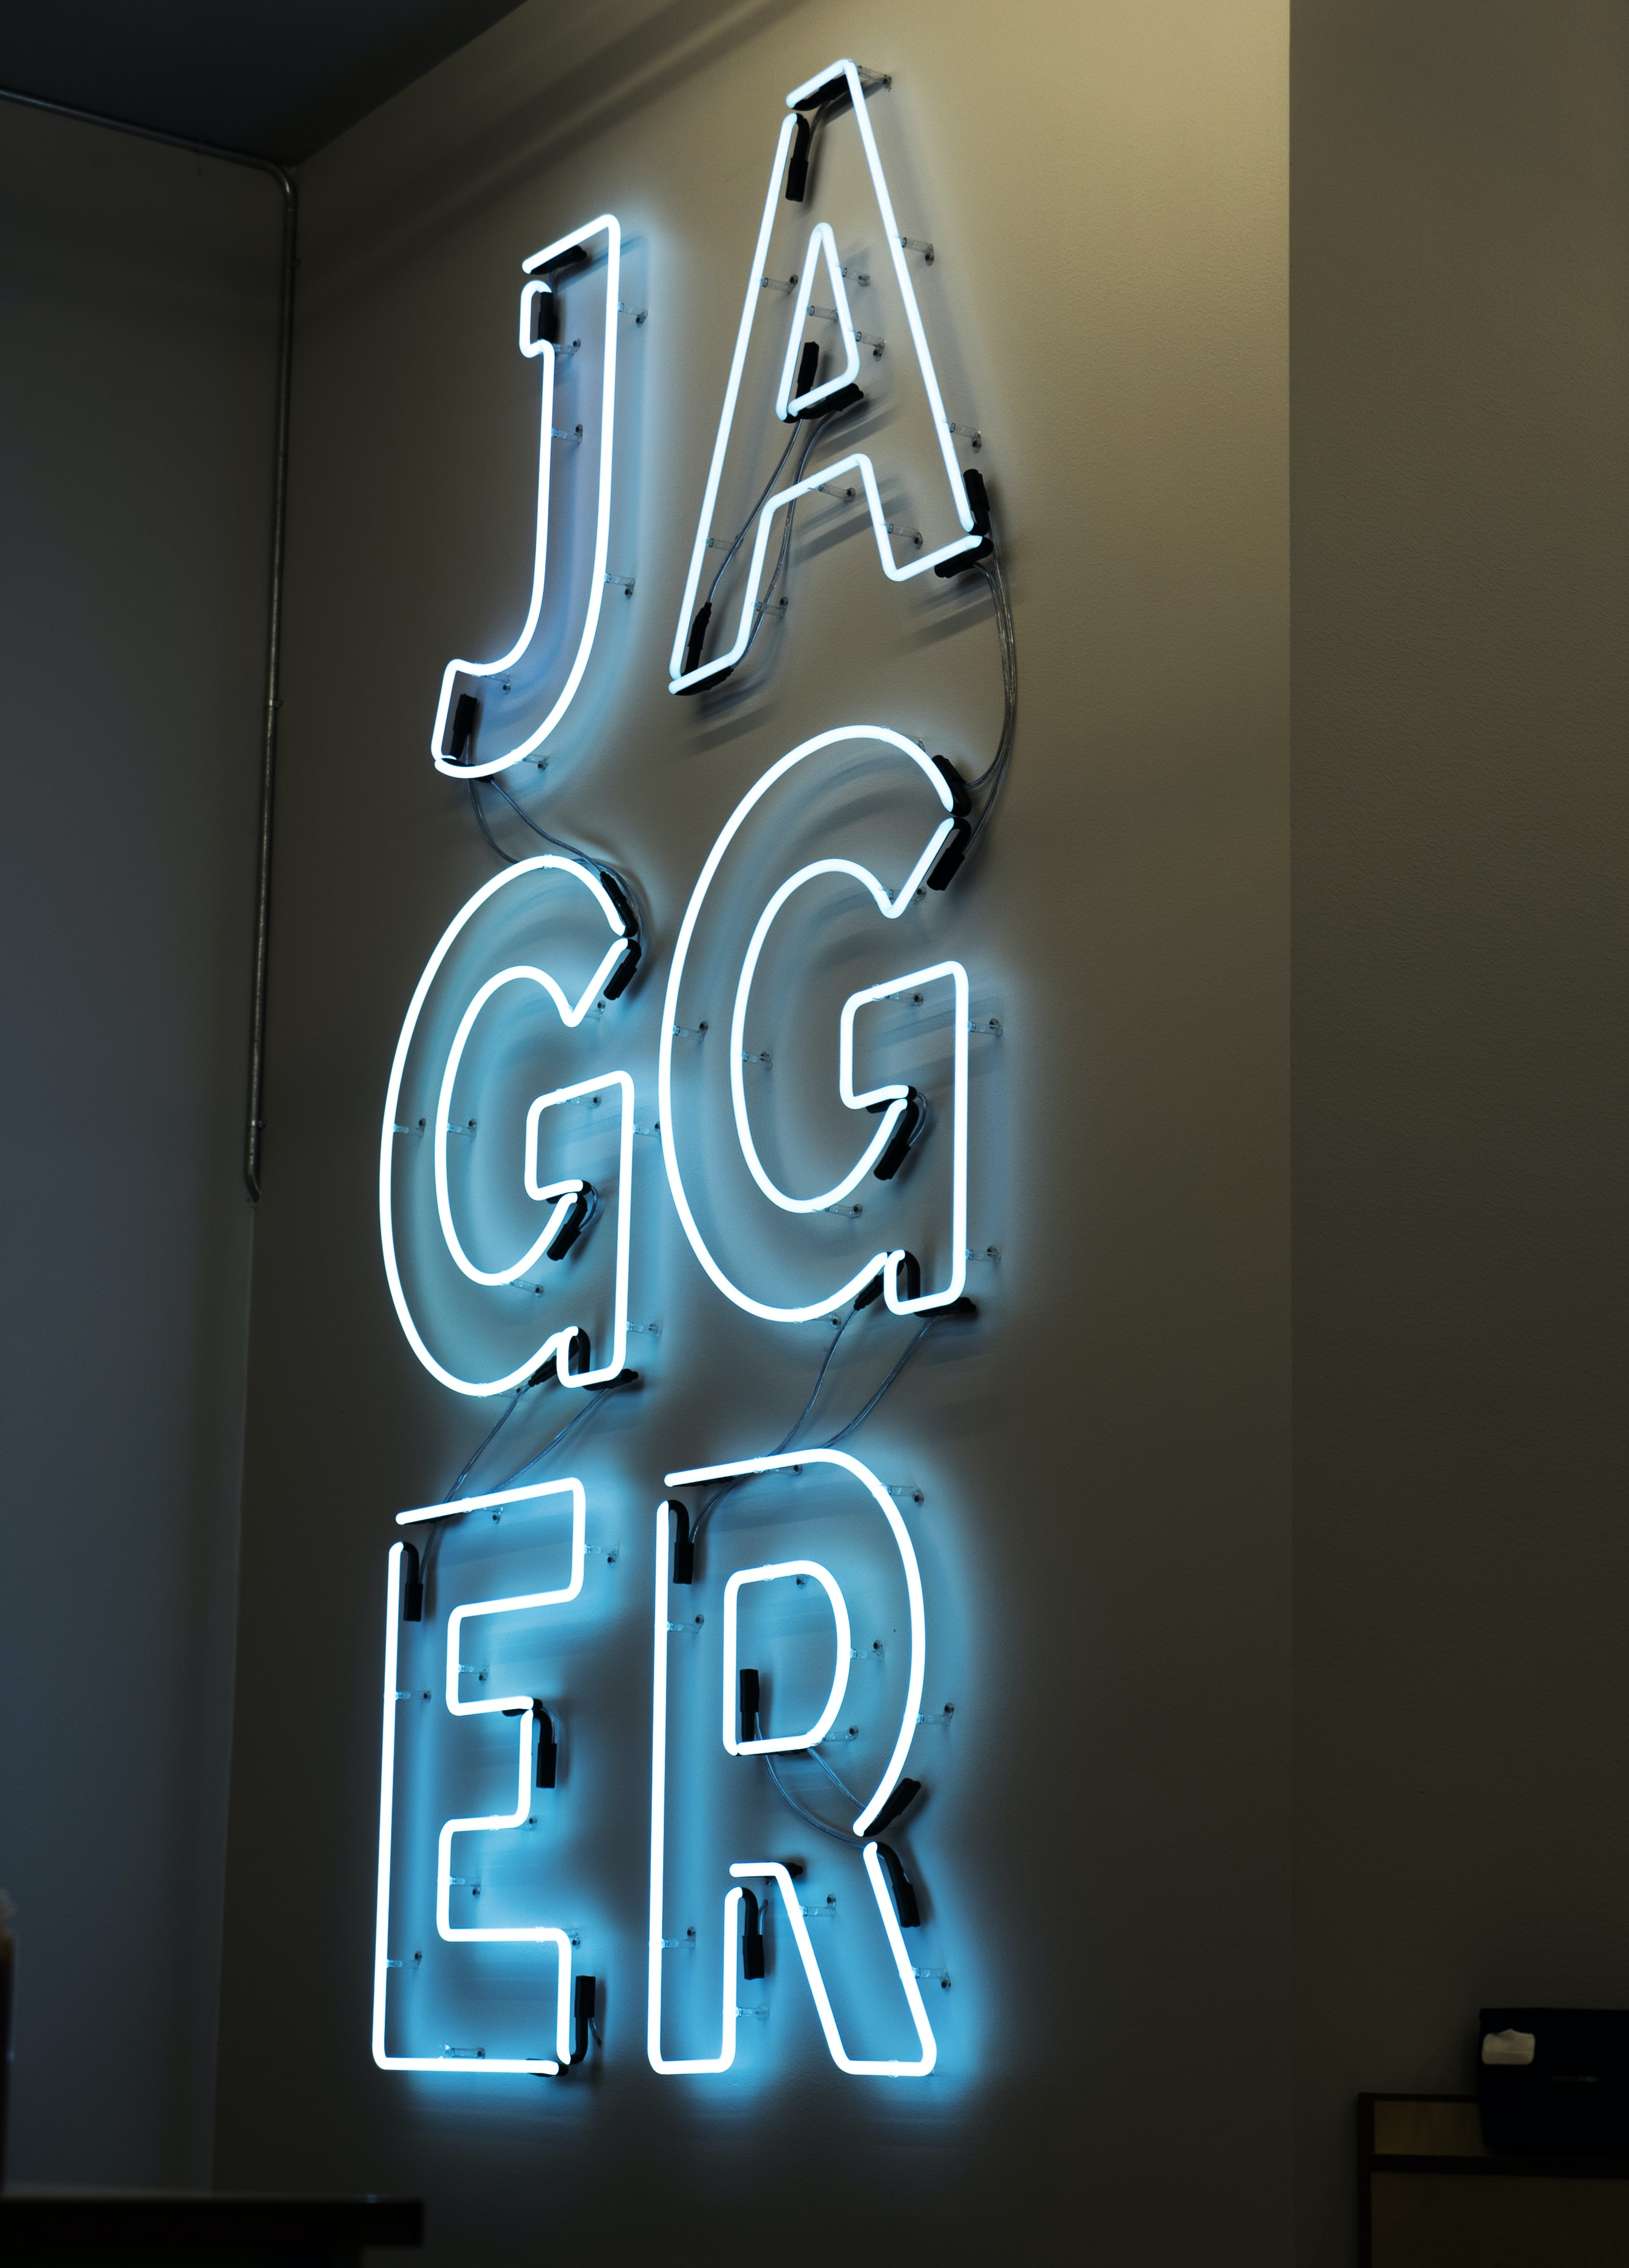 Jagger neon light signage